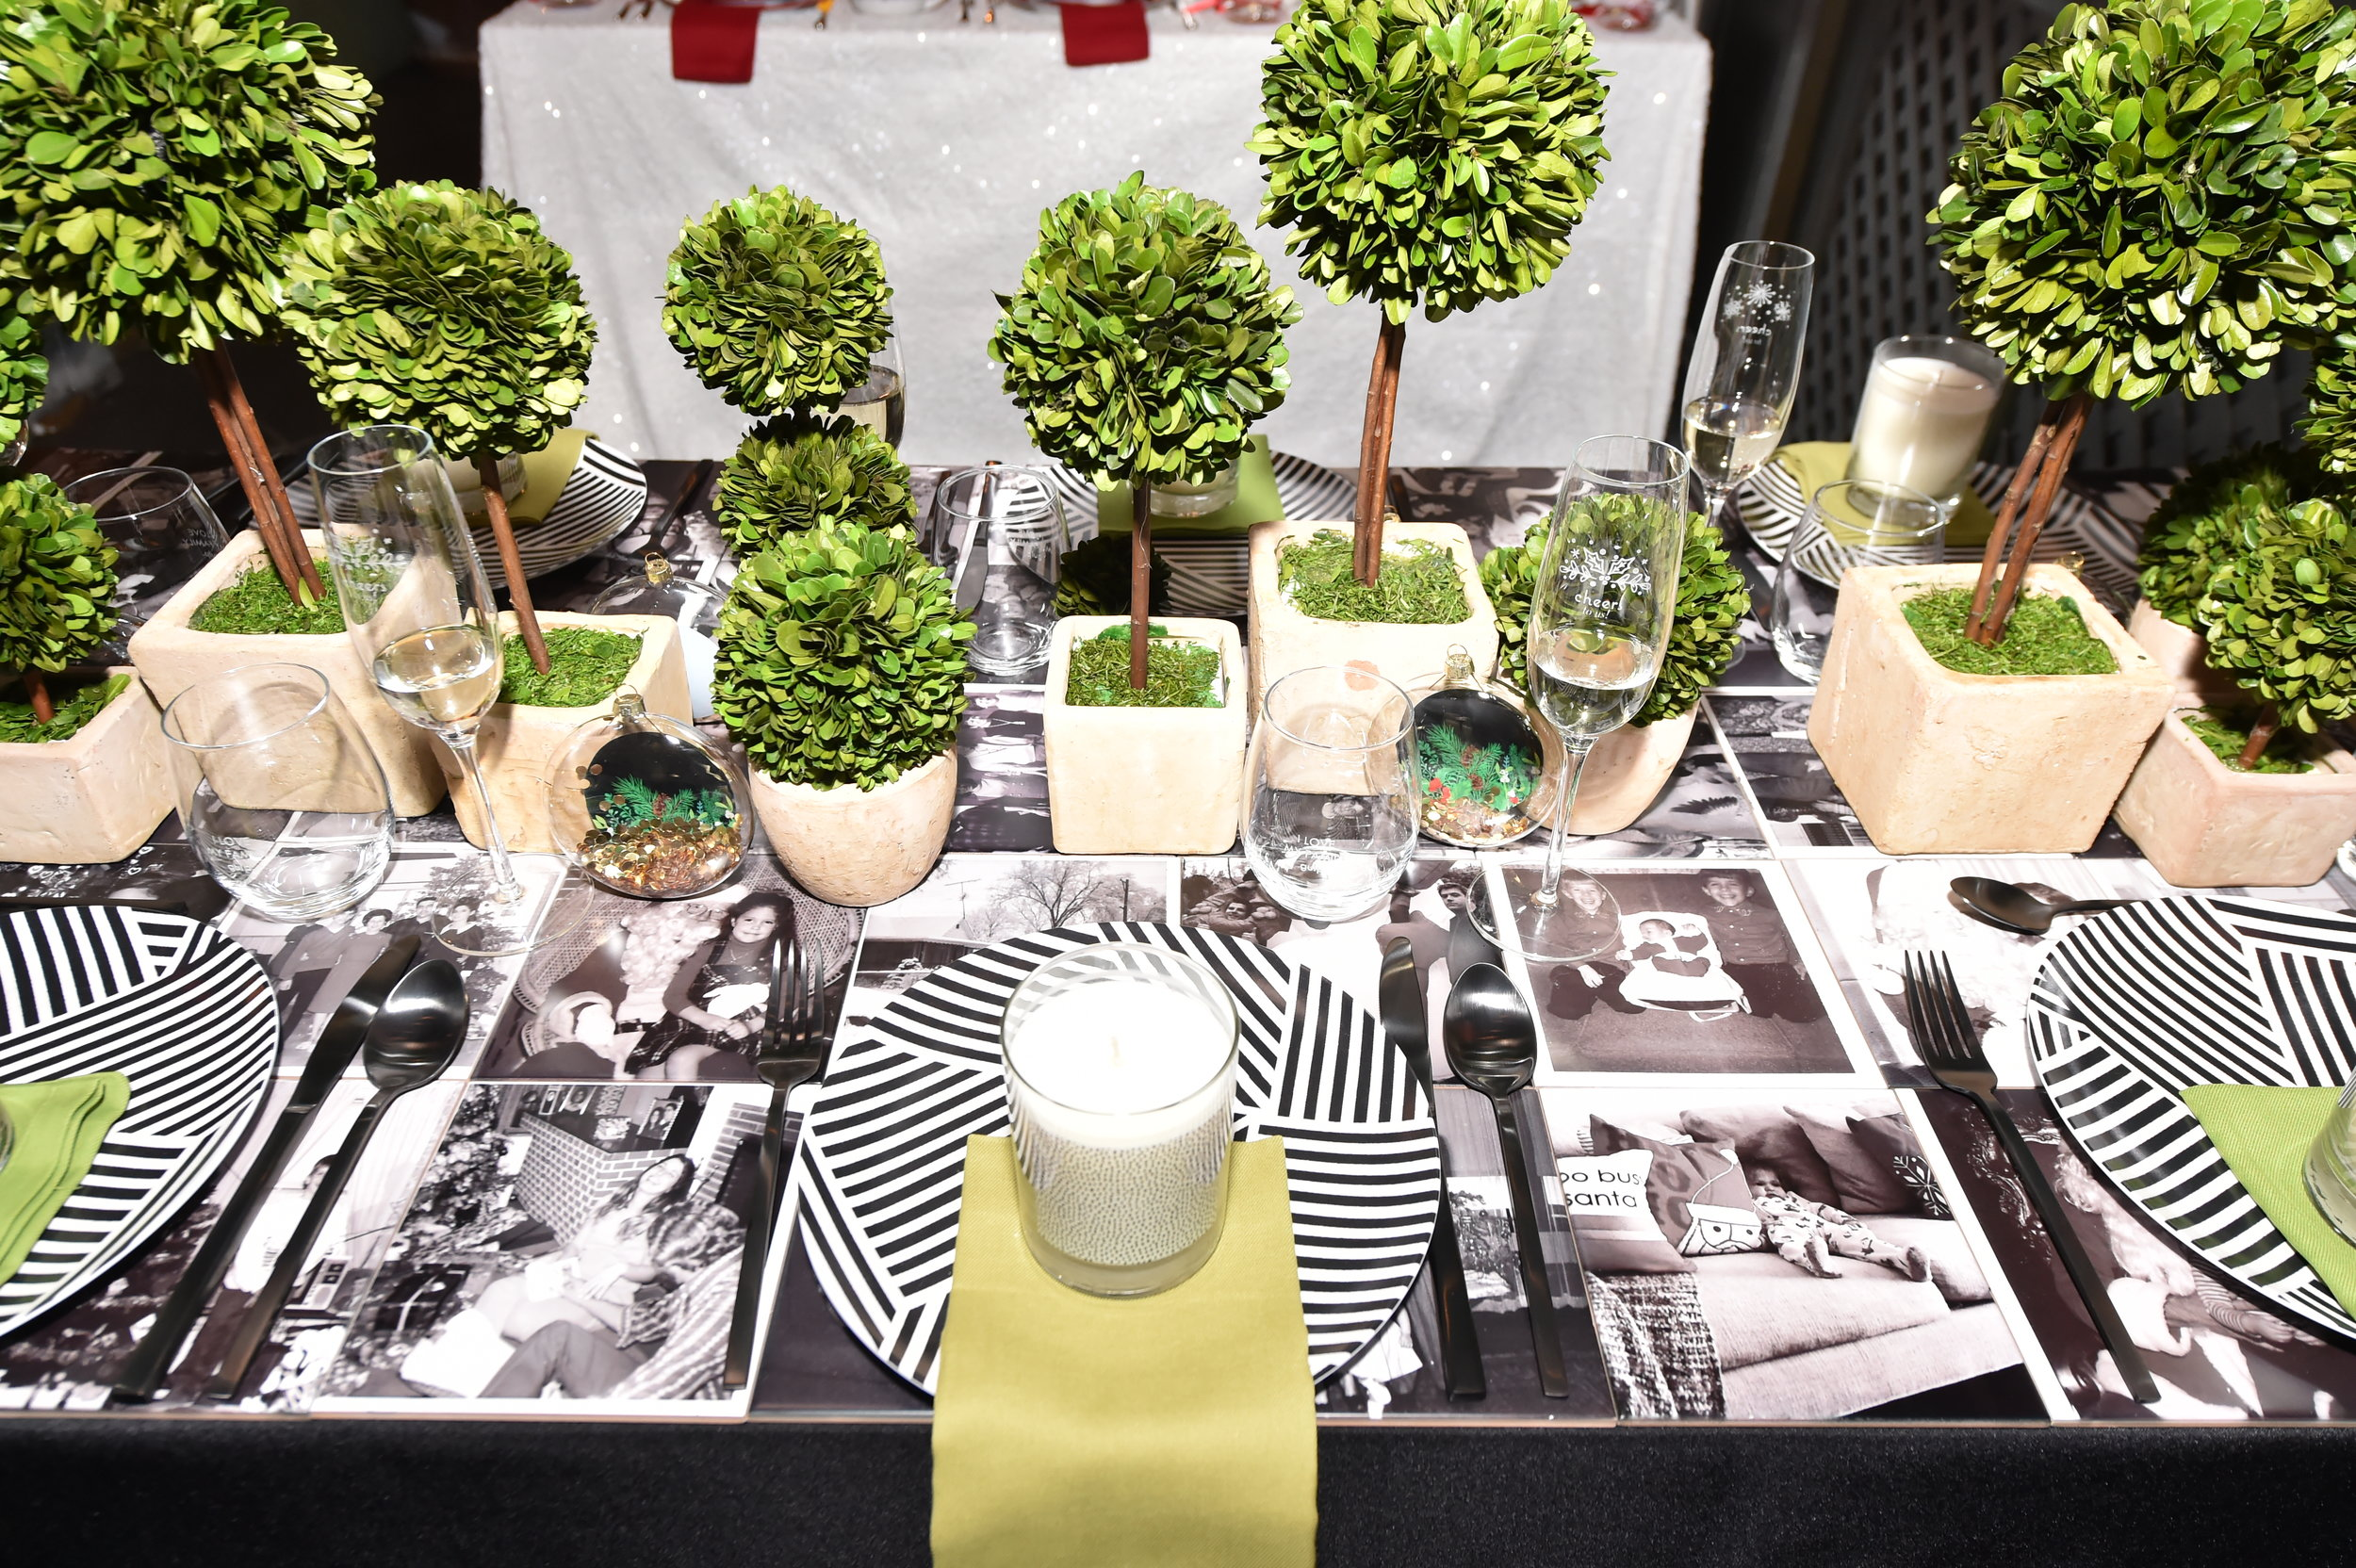 The table top was made of my vintage family holiday photos printed on 6x6 ceramic Shutterfly tiles